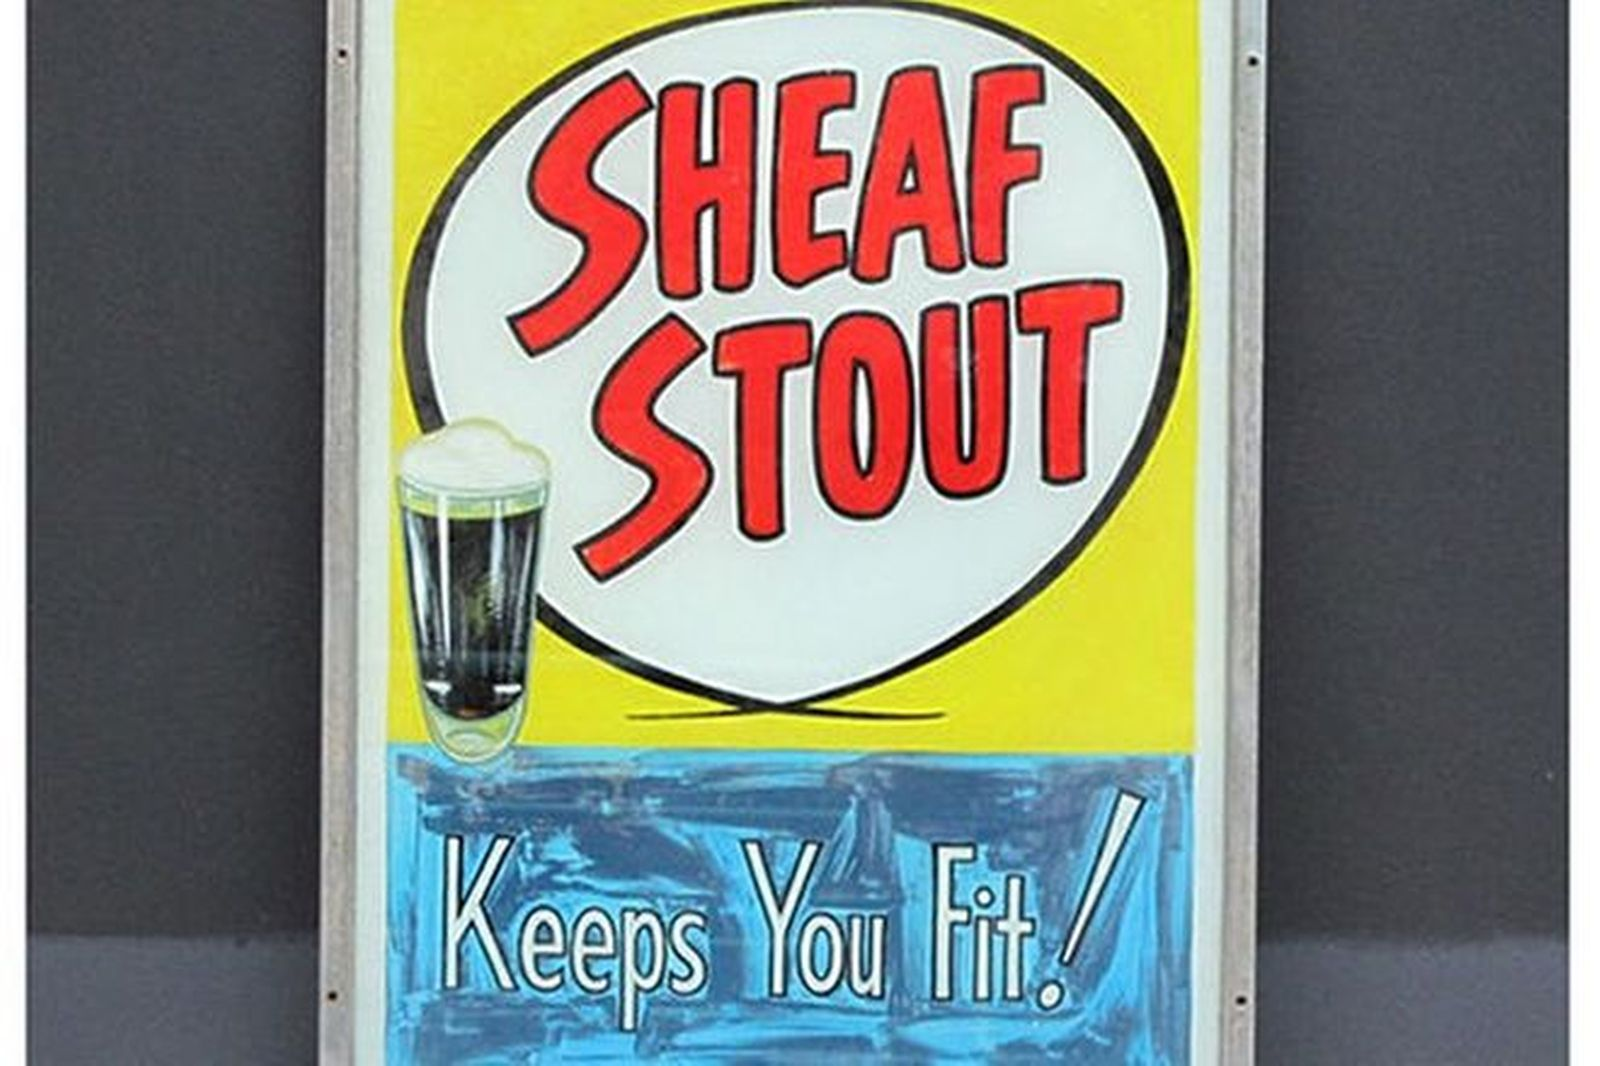 Sign - Framed Sheaf Stout Hotel Sign Hand Painted on Glass (105cm x 75 cm)